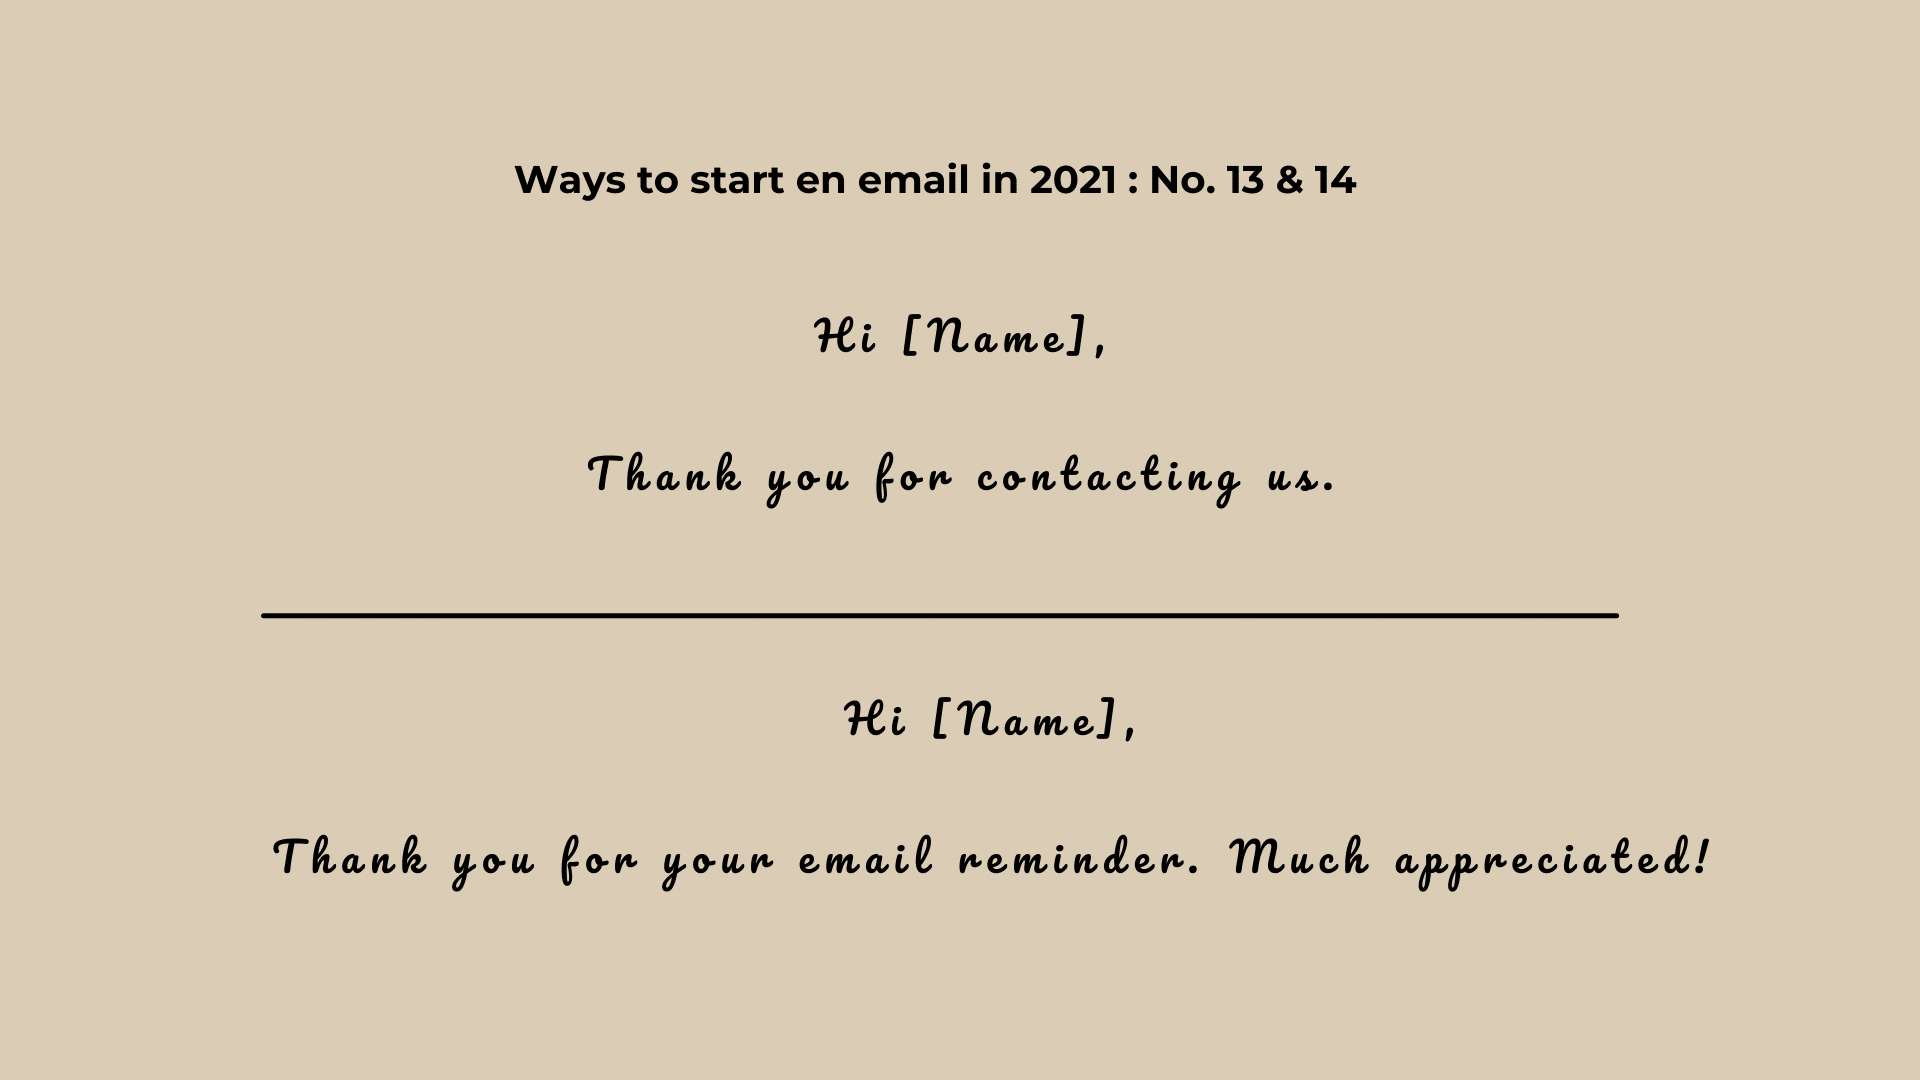 no-fail-tips-to-start-an-email-in-2021-1